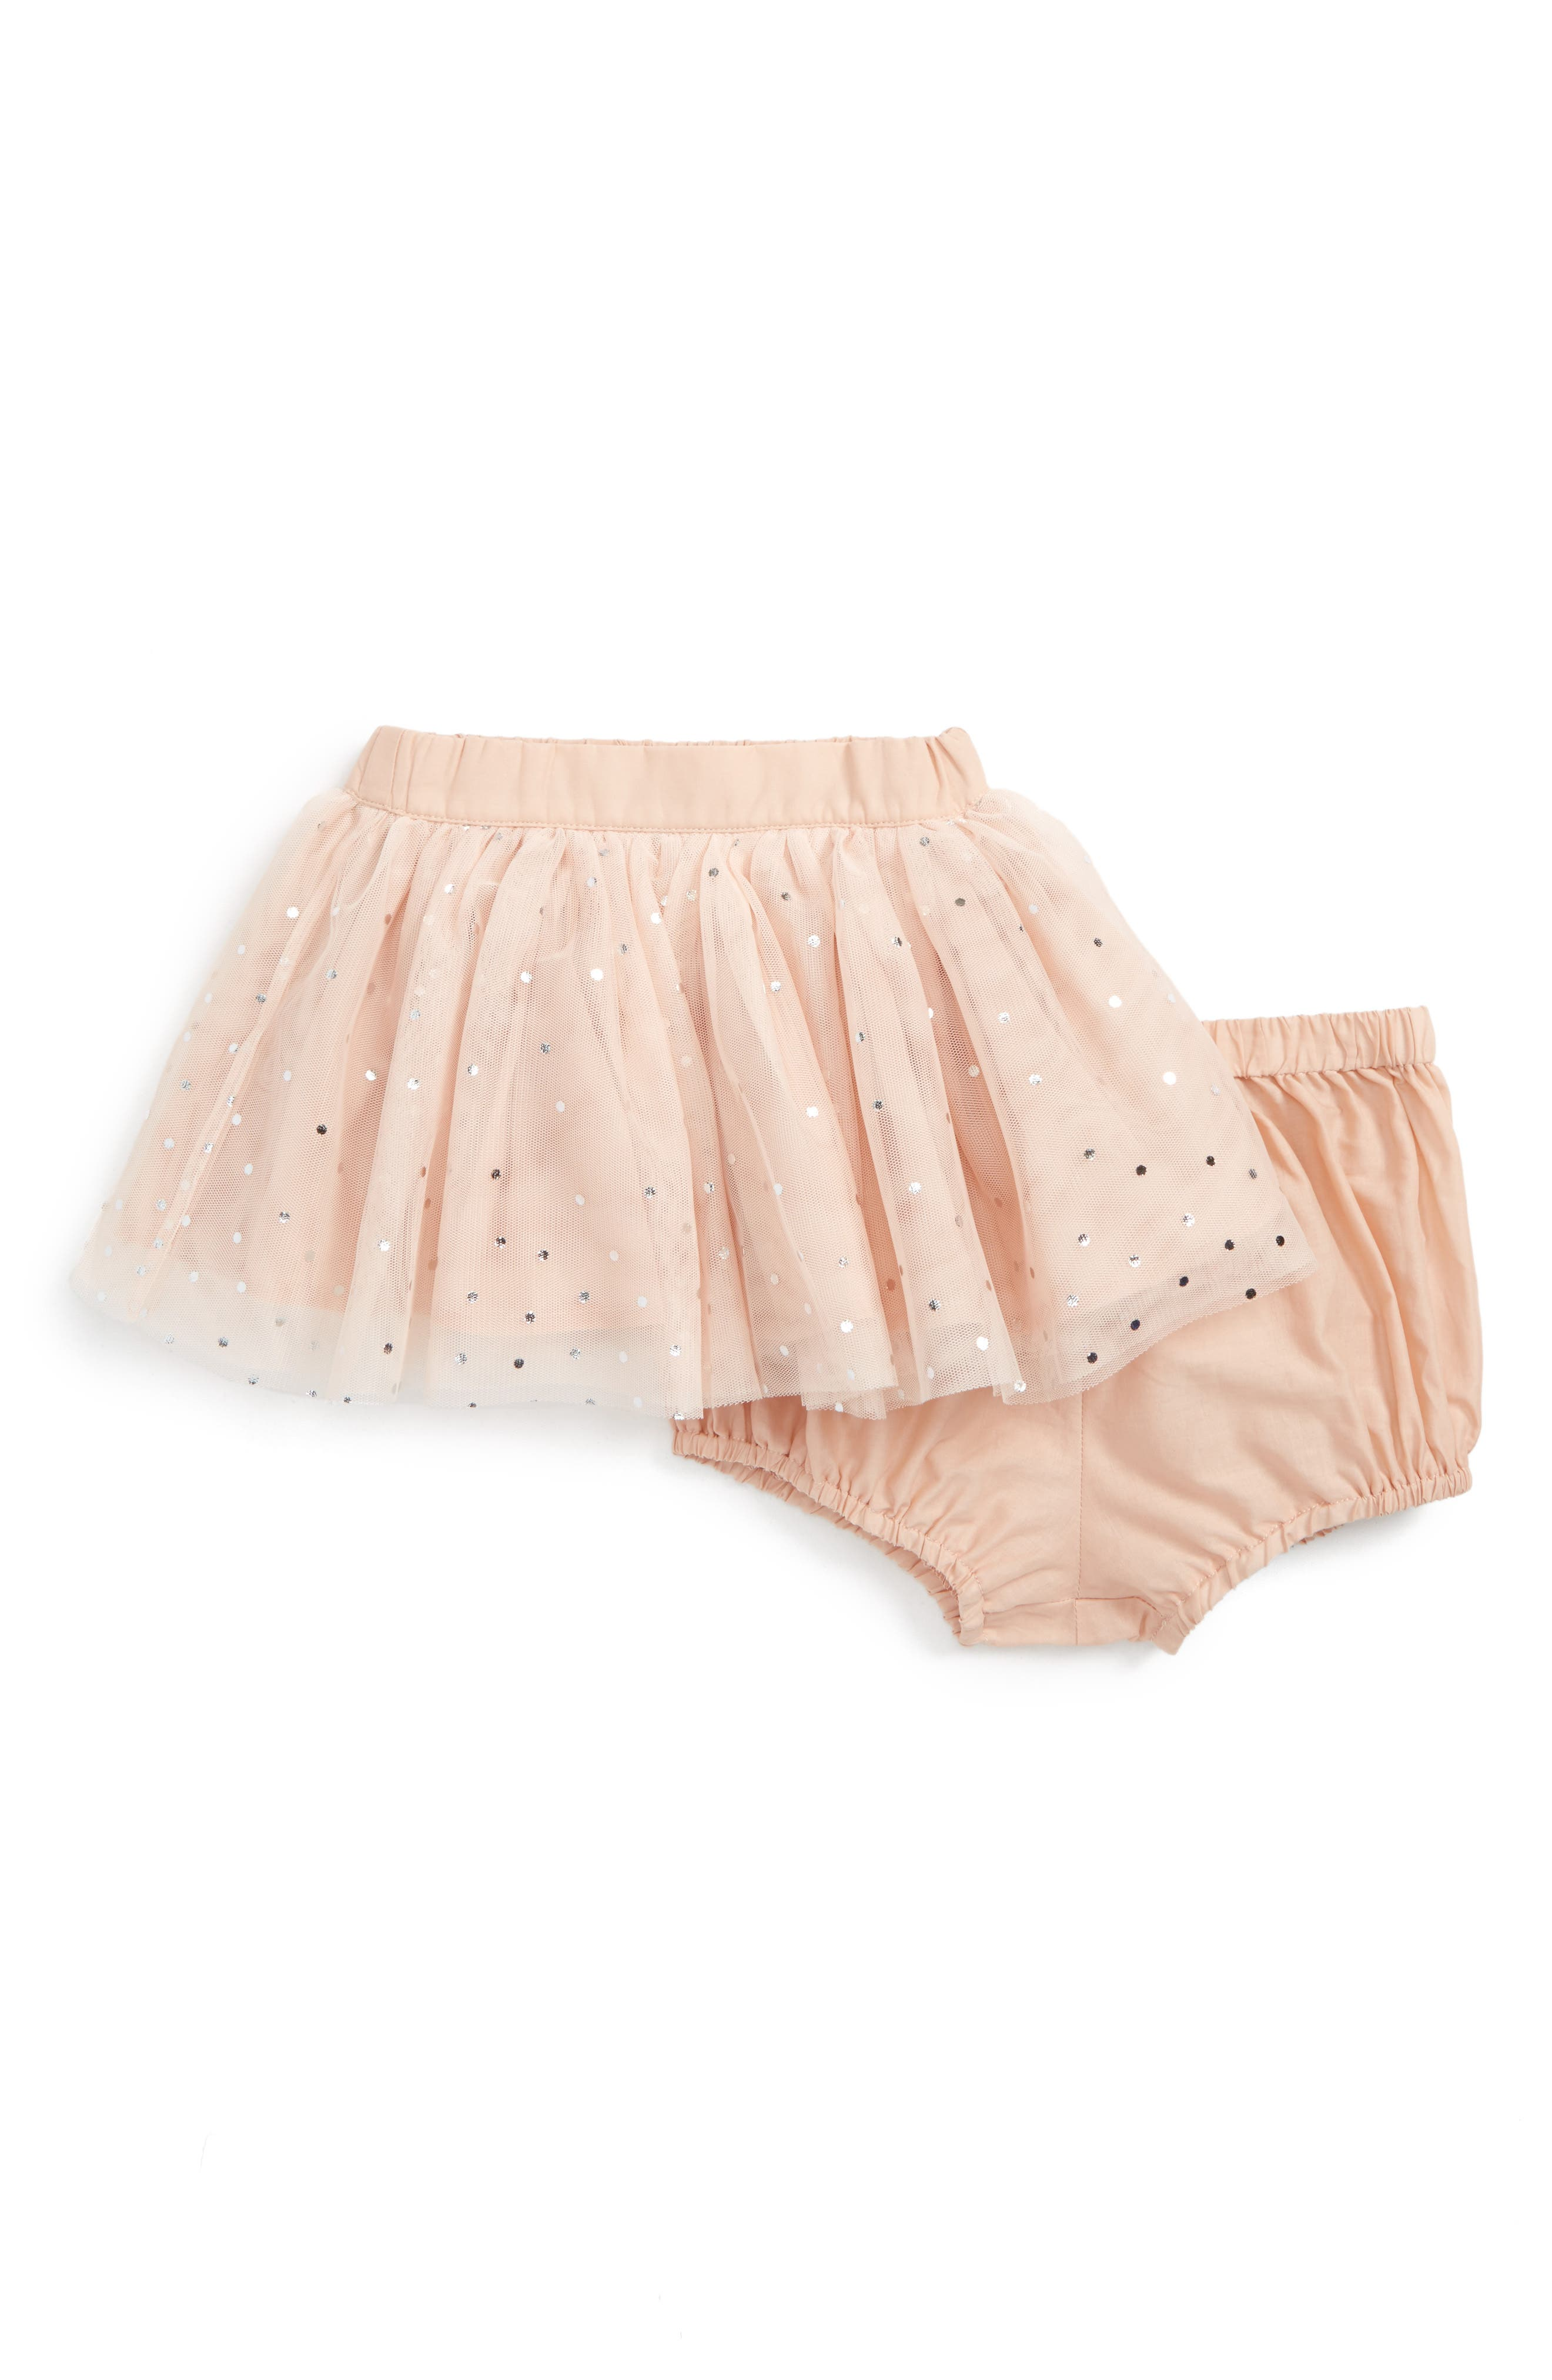 Kids Honey Sparkle Tulle Skirt,                         Main,                         color, Pearl Pink